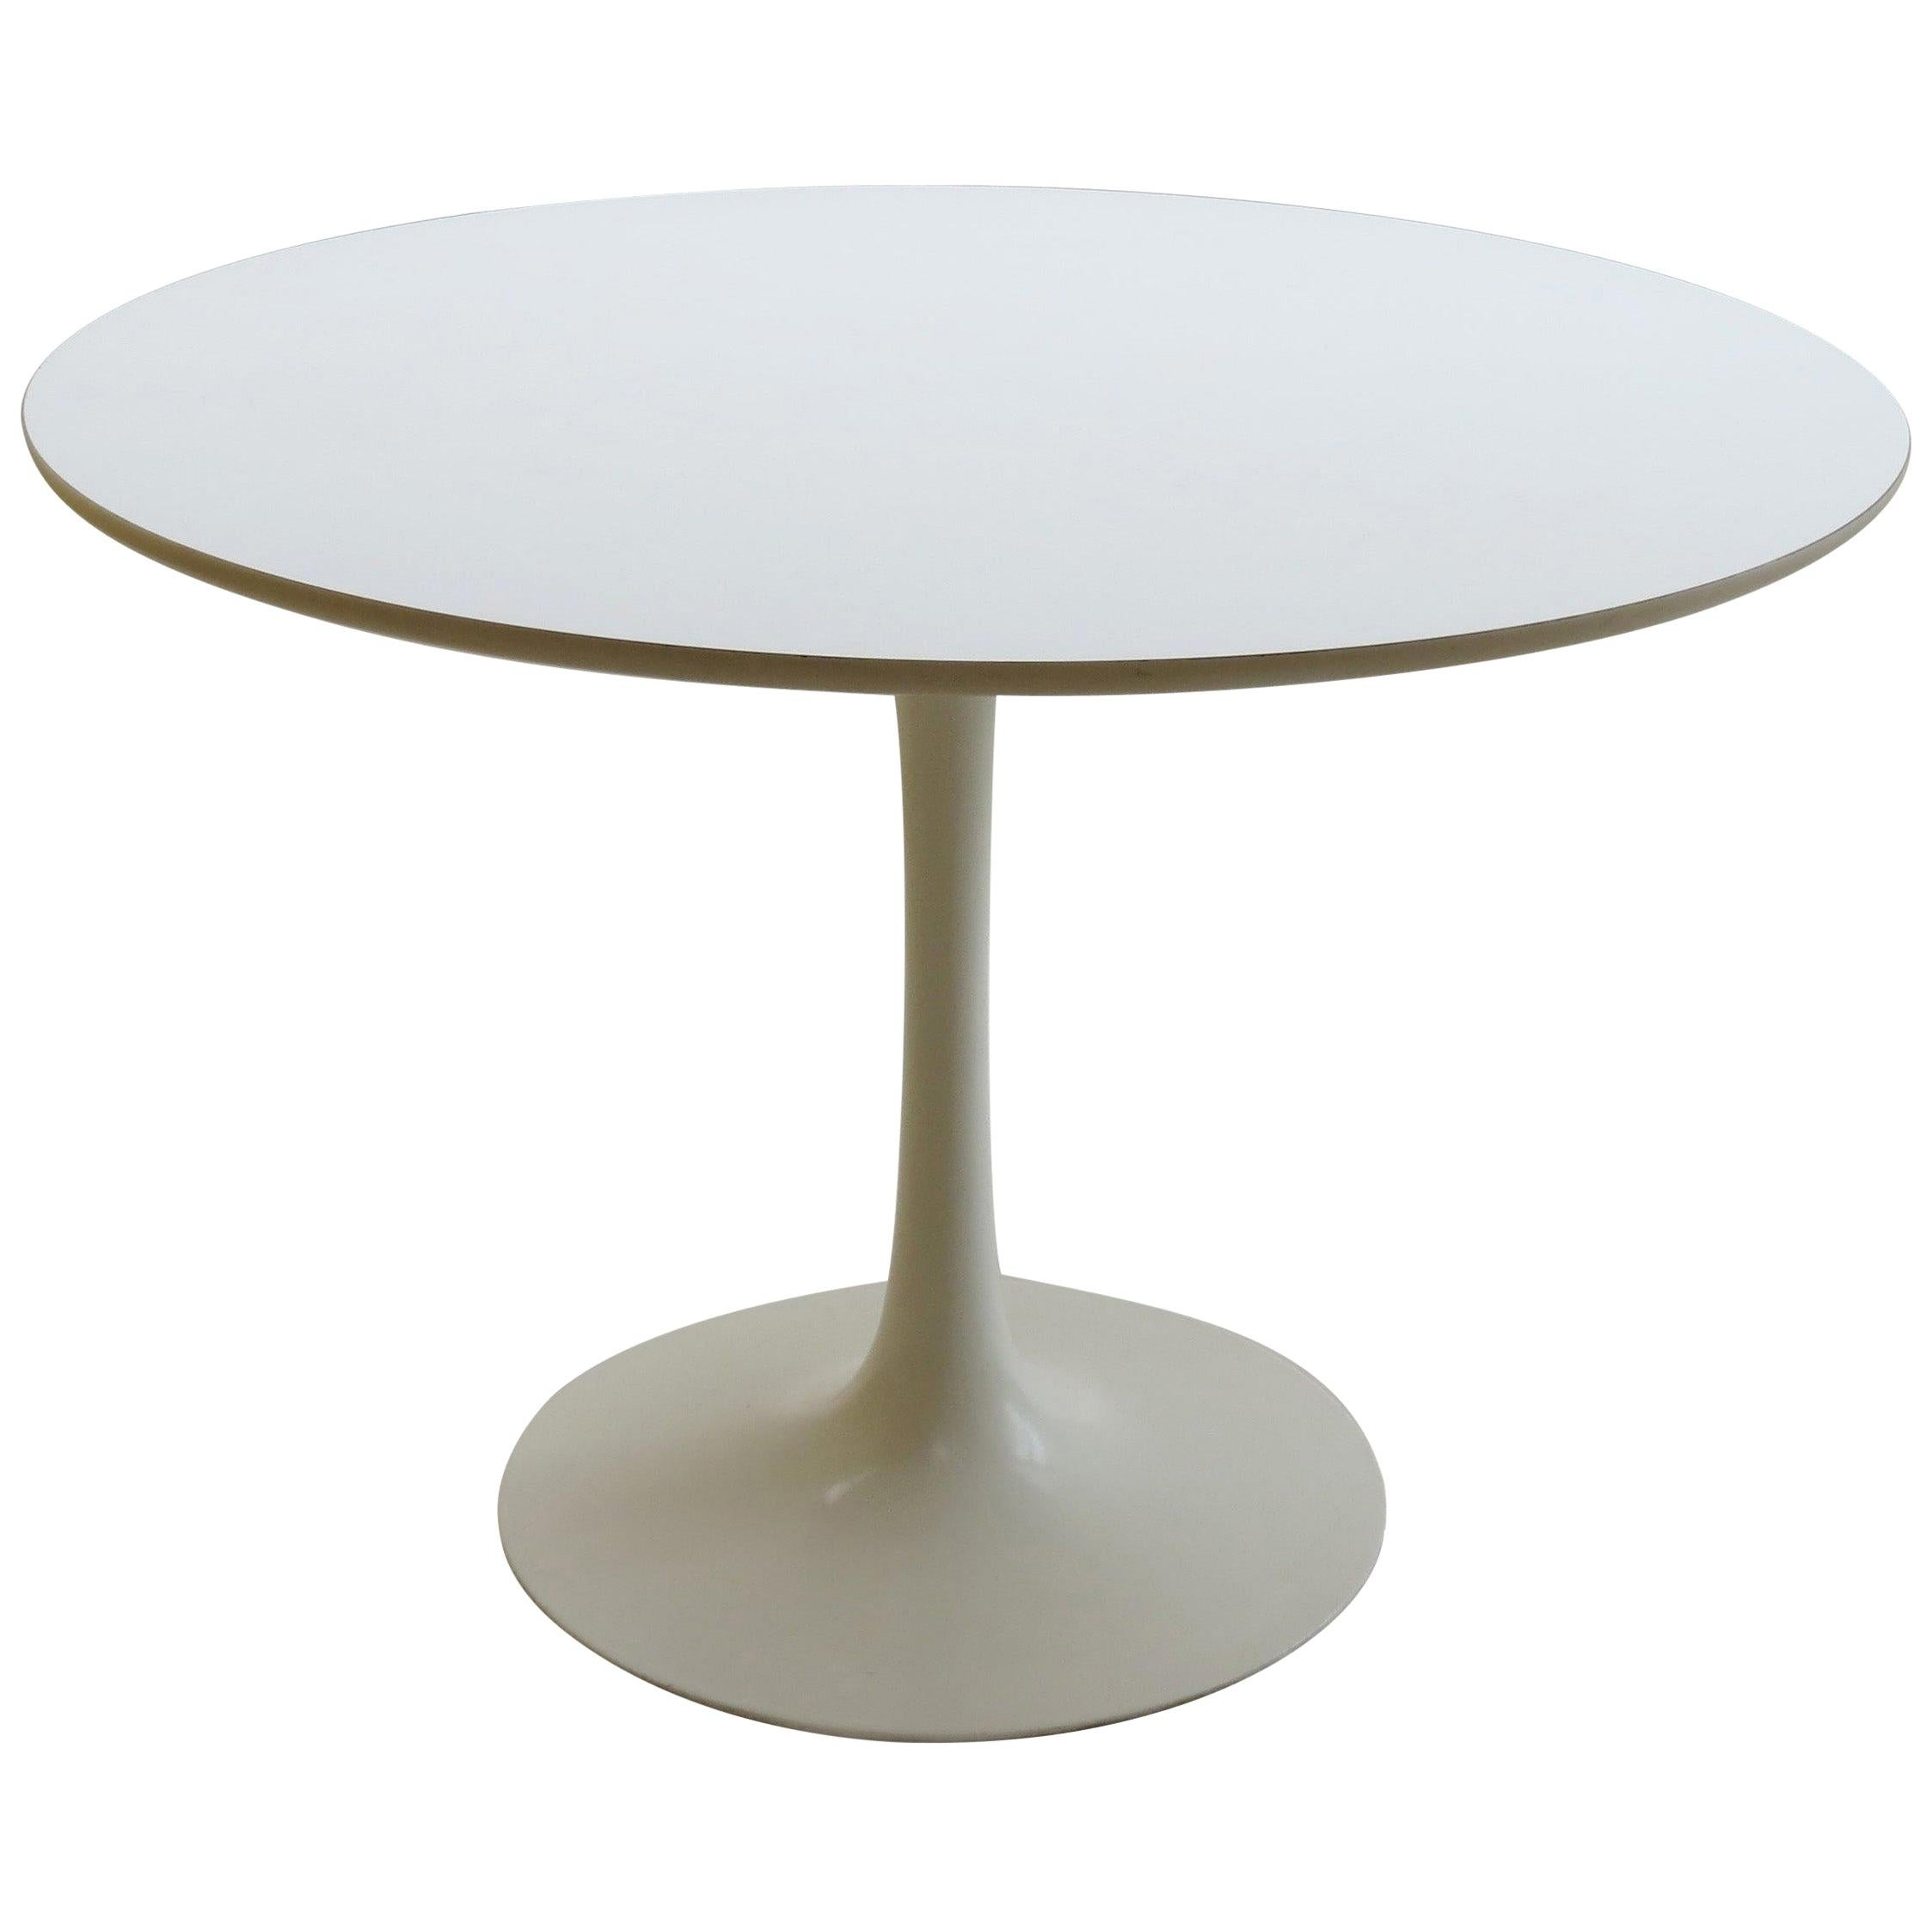 1960s White Tulip Dining Table by Maurice Burke for Arkana, UK